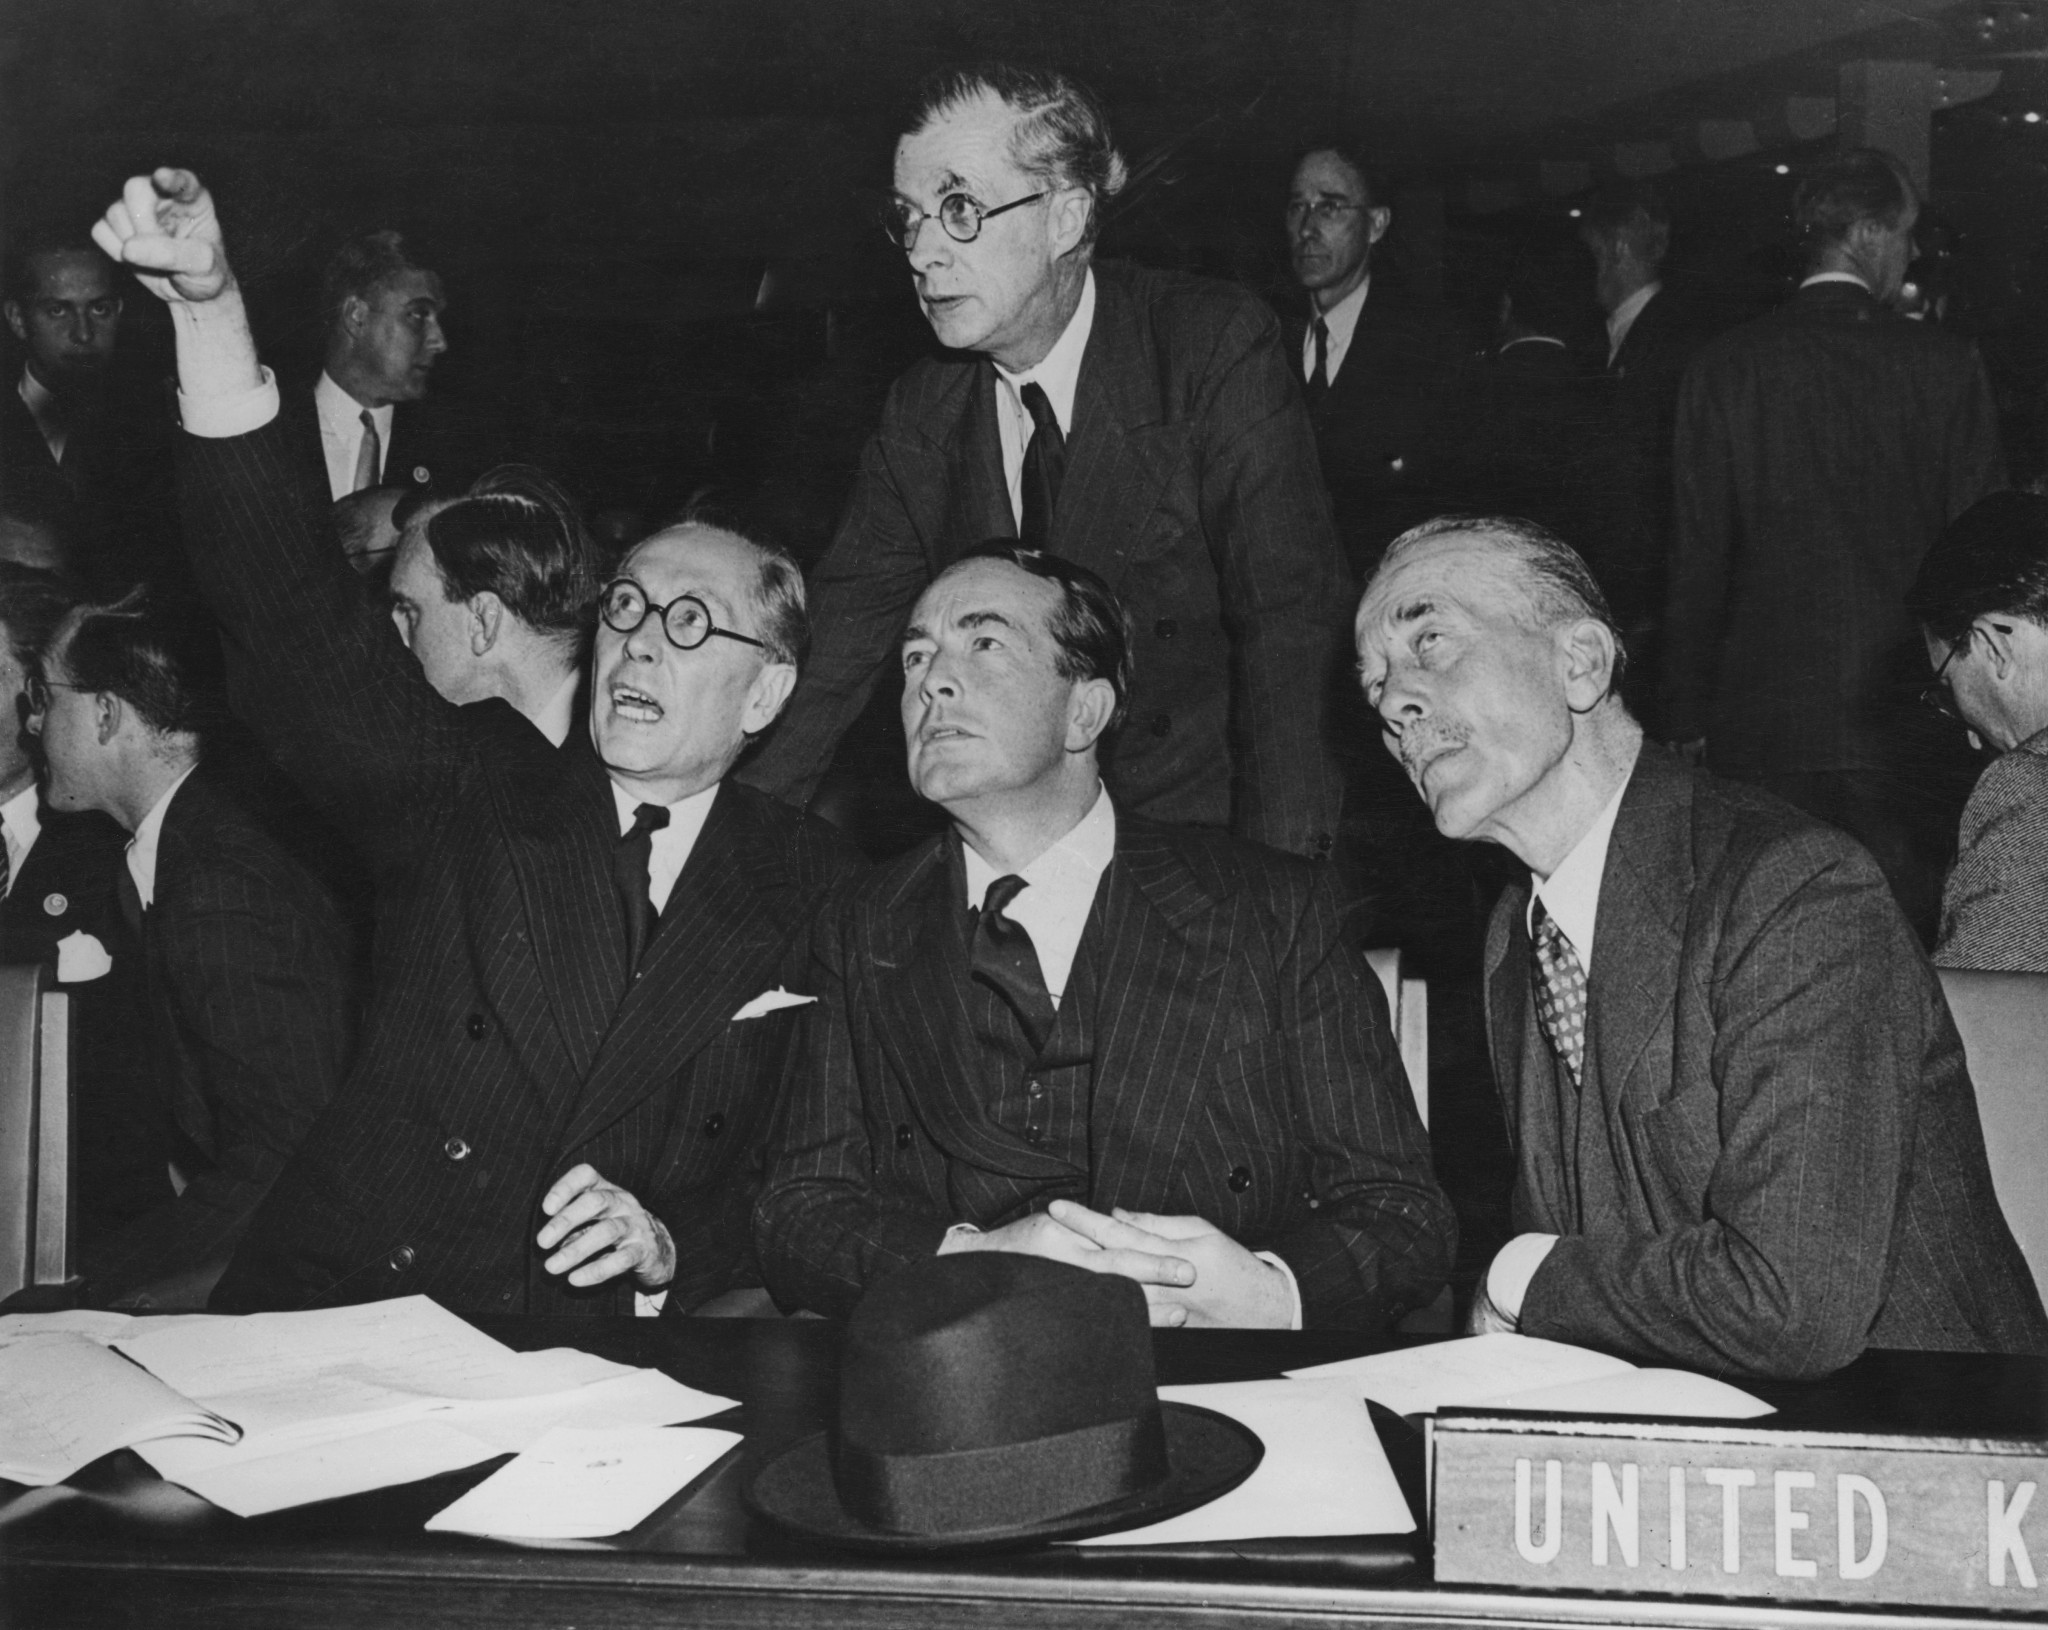 Philip Noel-Baker, left, at the United Nations General Assembly in New York City in 1946 ©Getty Images